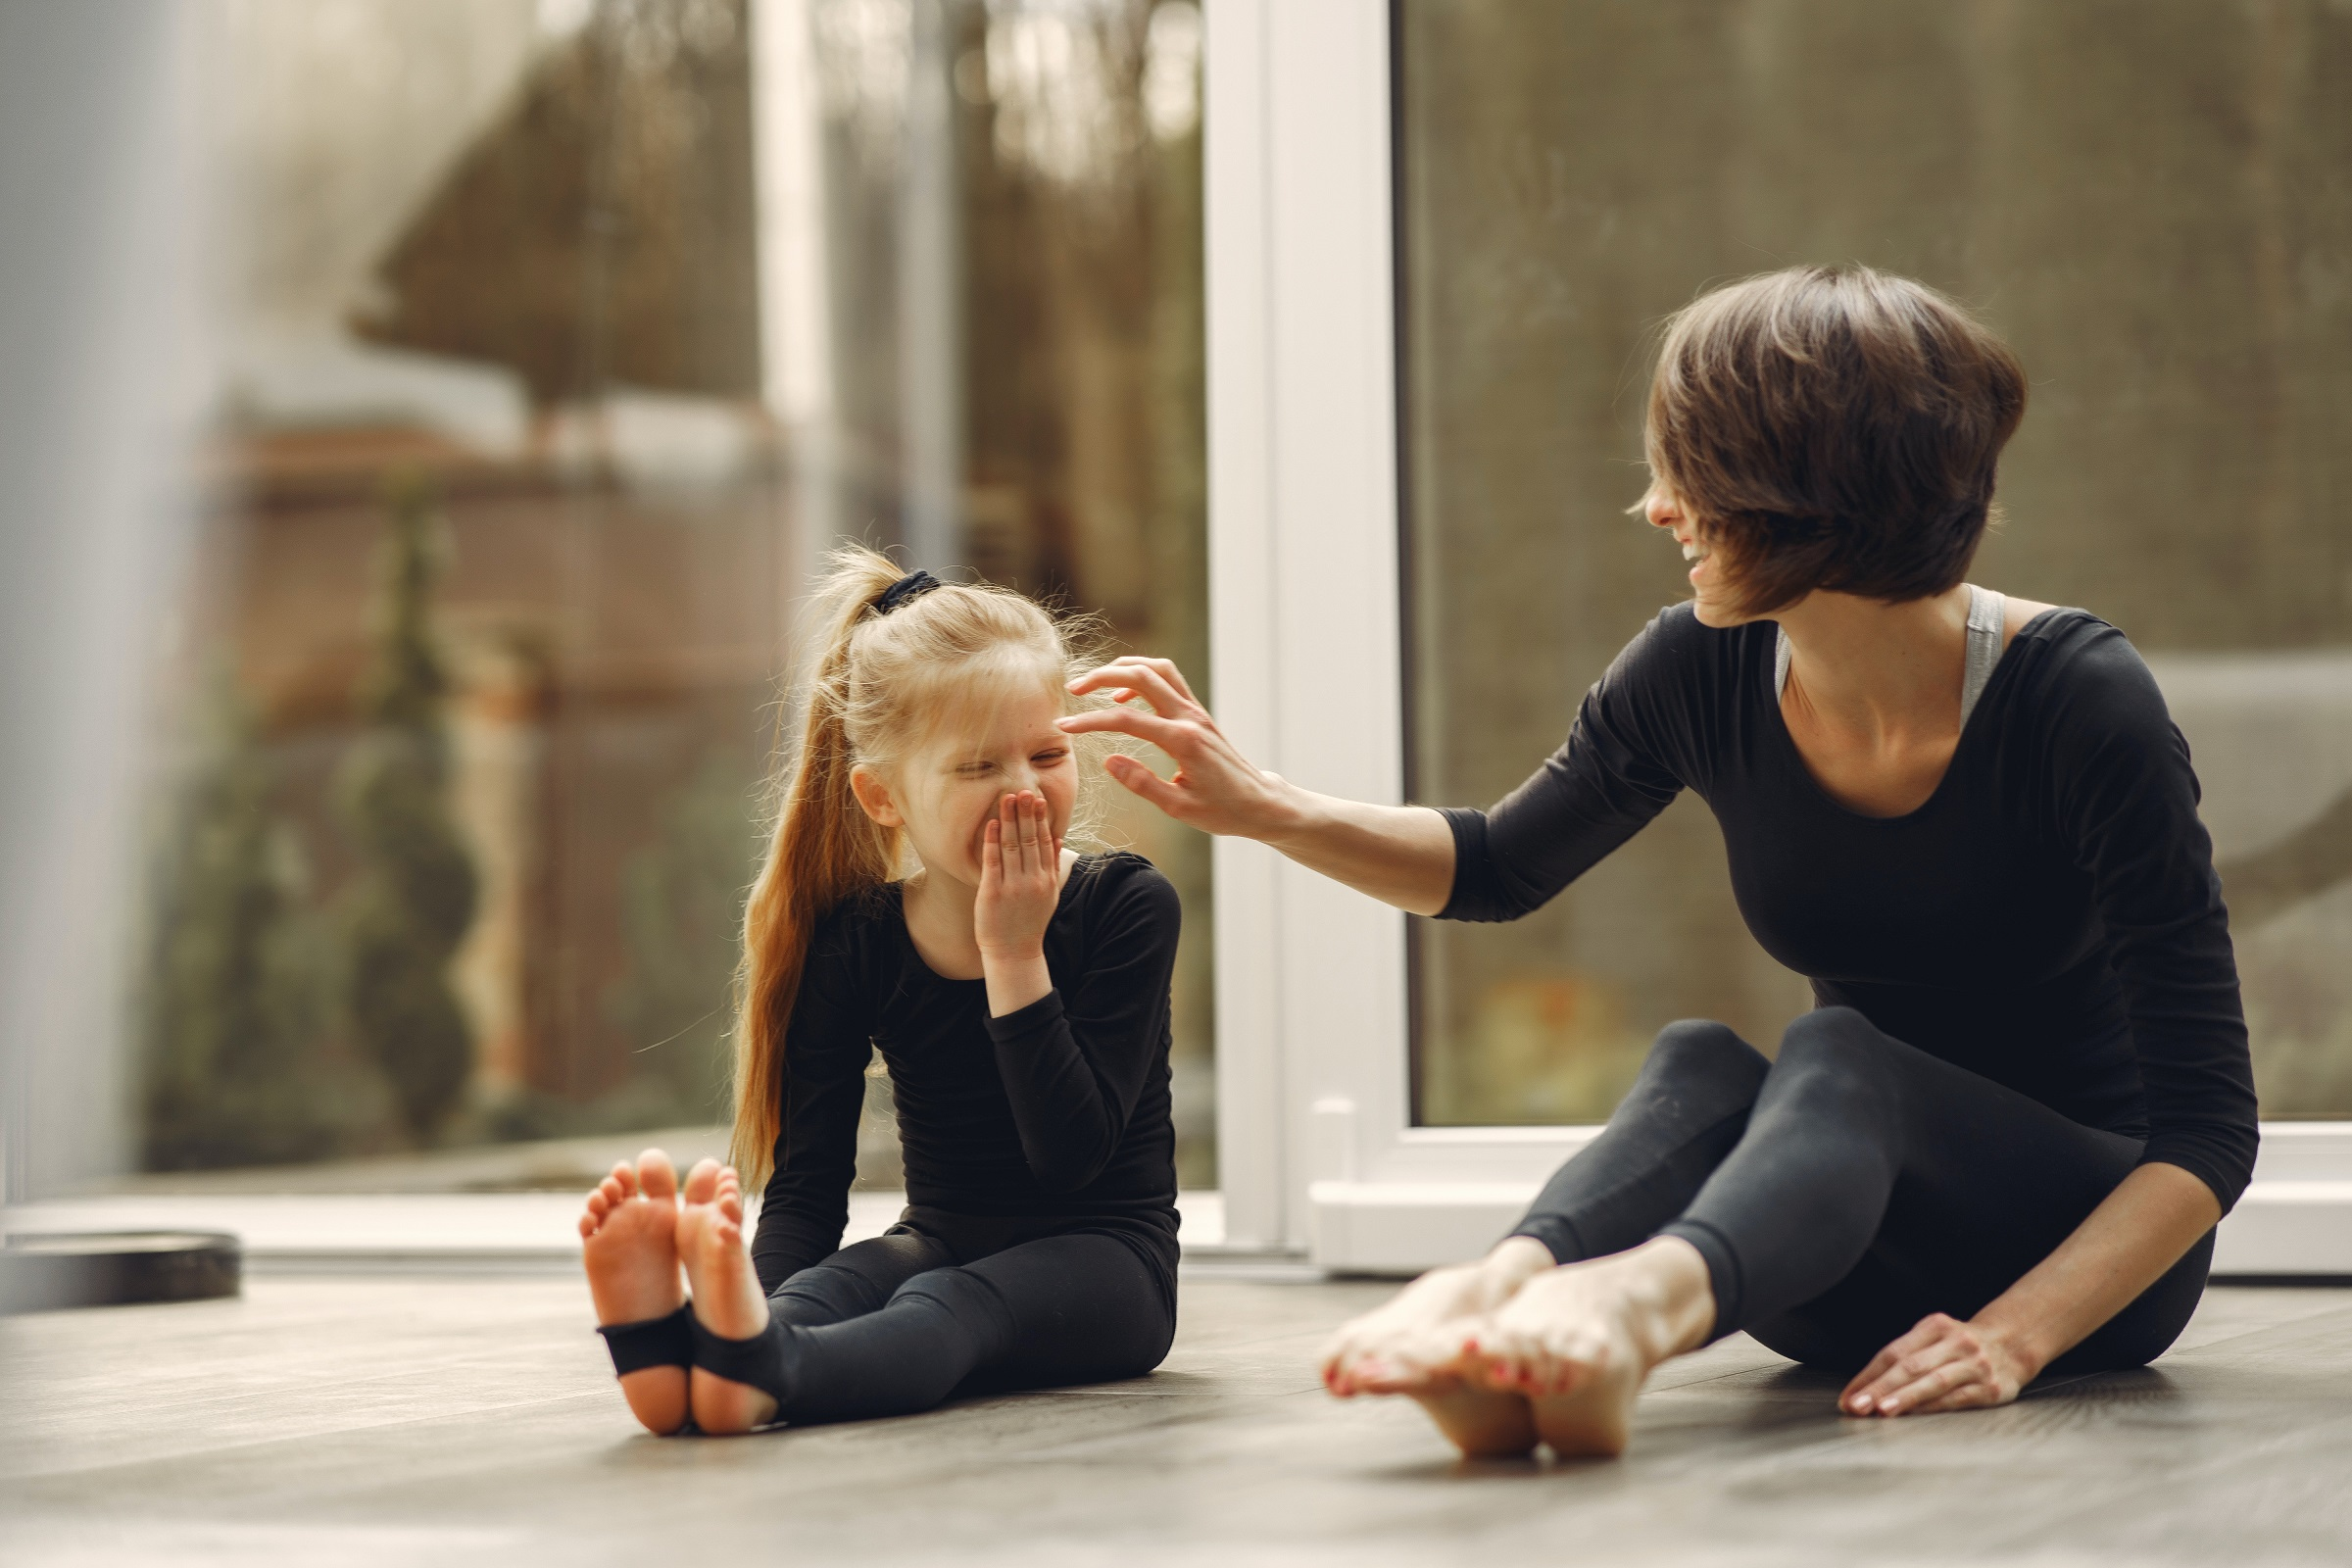 Mother and daughter bonding 3985253  1